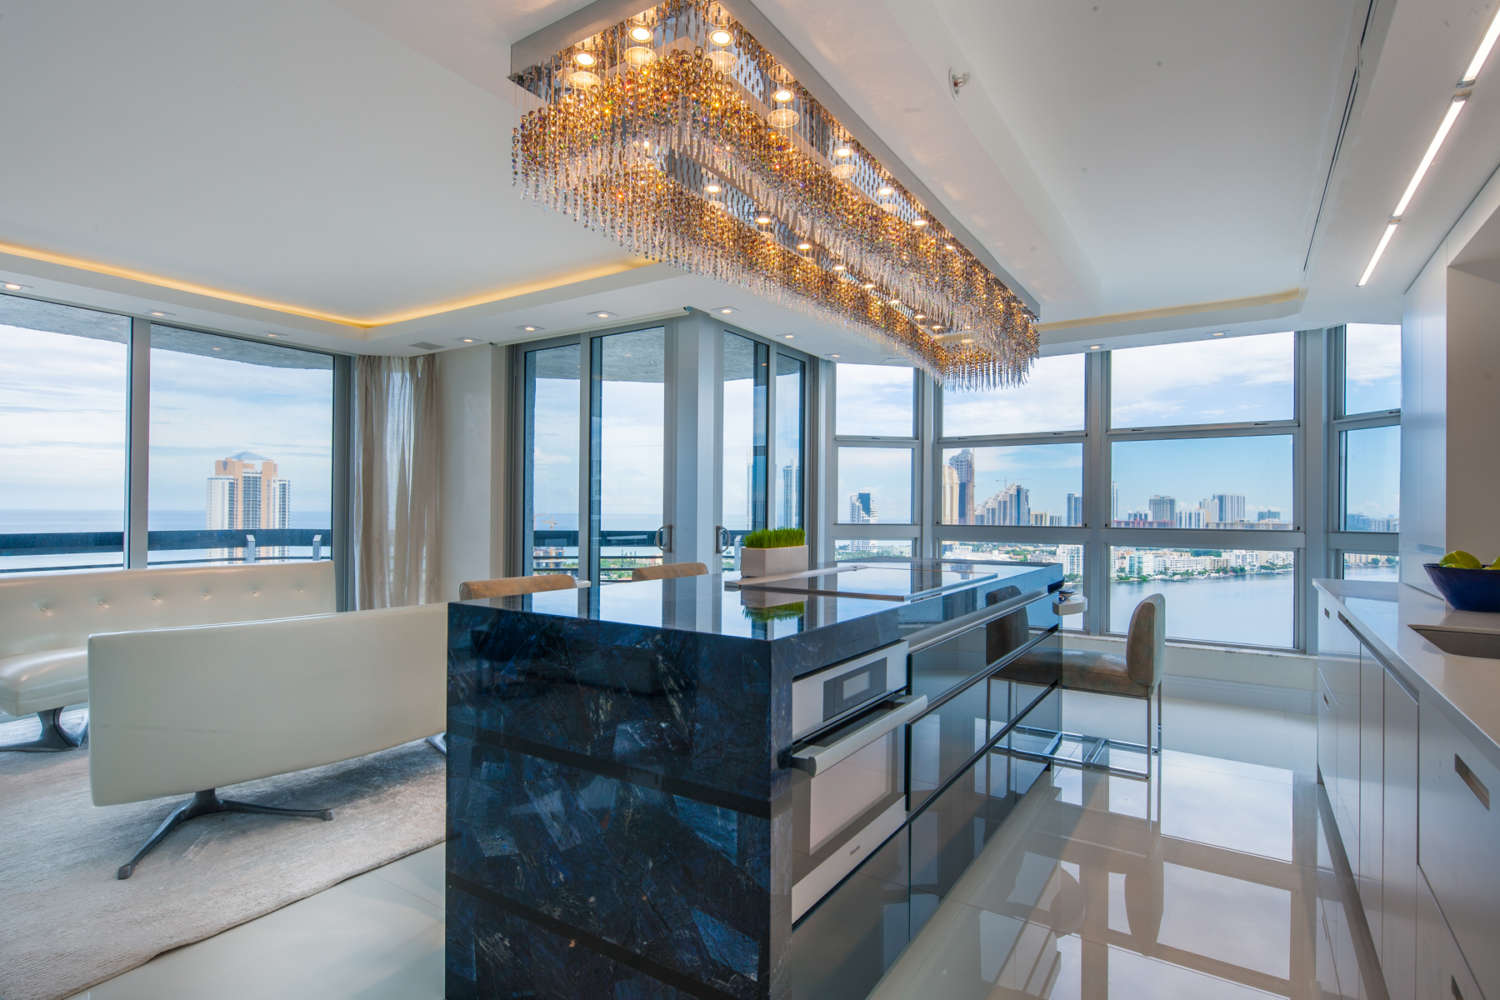 Florida penthouse kitchen features flat panel, frameless fully custom Artcraft cabinetry in a mix of semi gloss white and Galaxy glass, an island with seating. Kitchen opens up into the living room area. Design by Peter Bittner of Bilotta Kitchens.